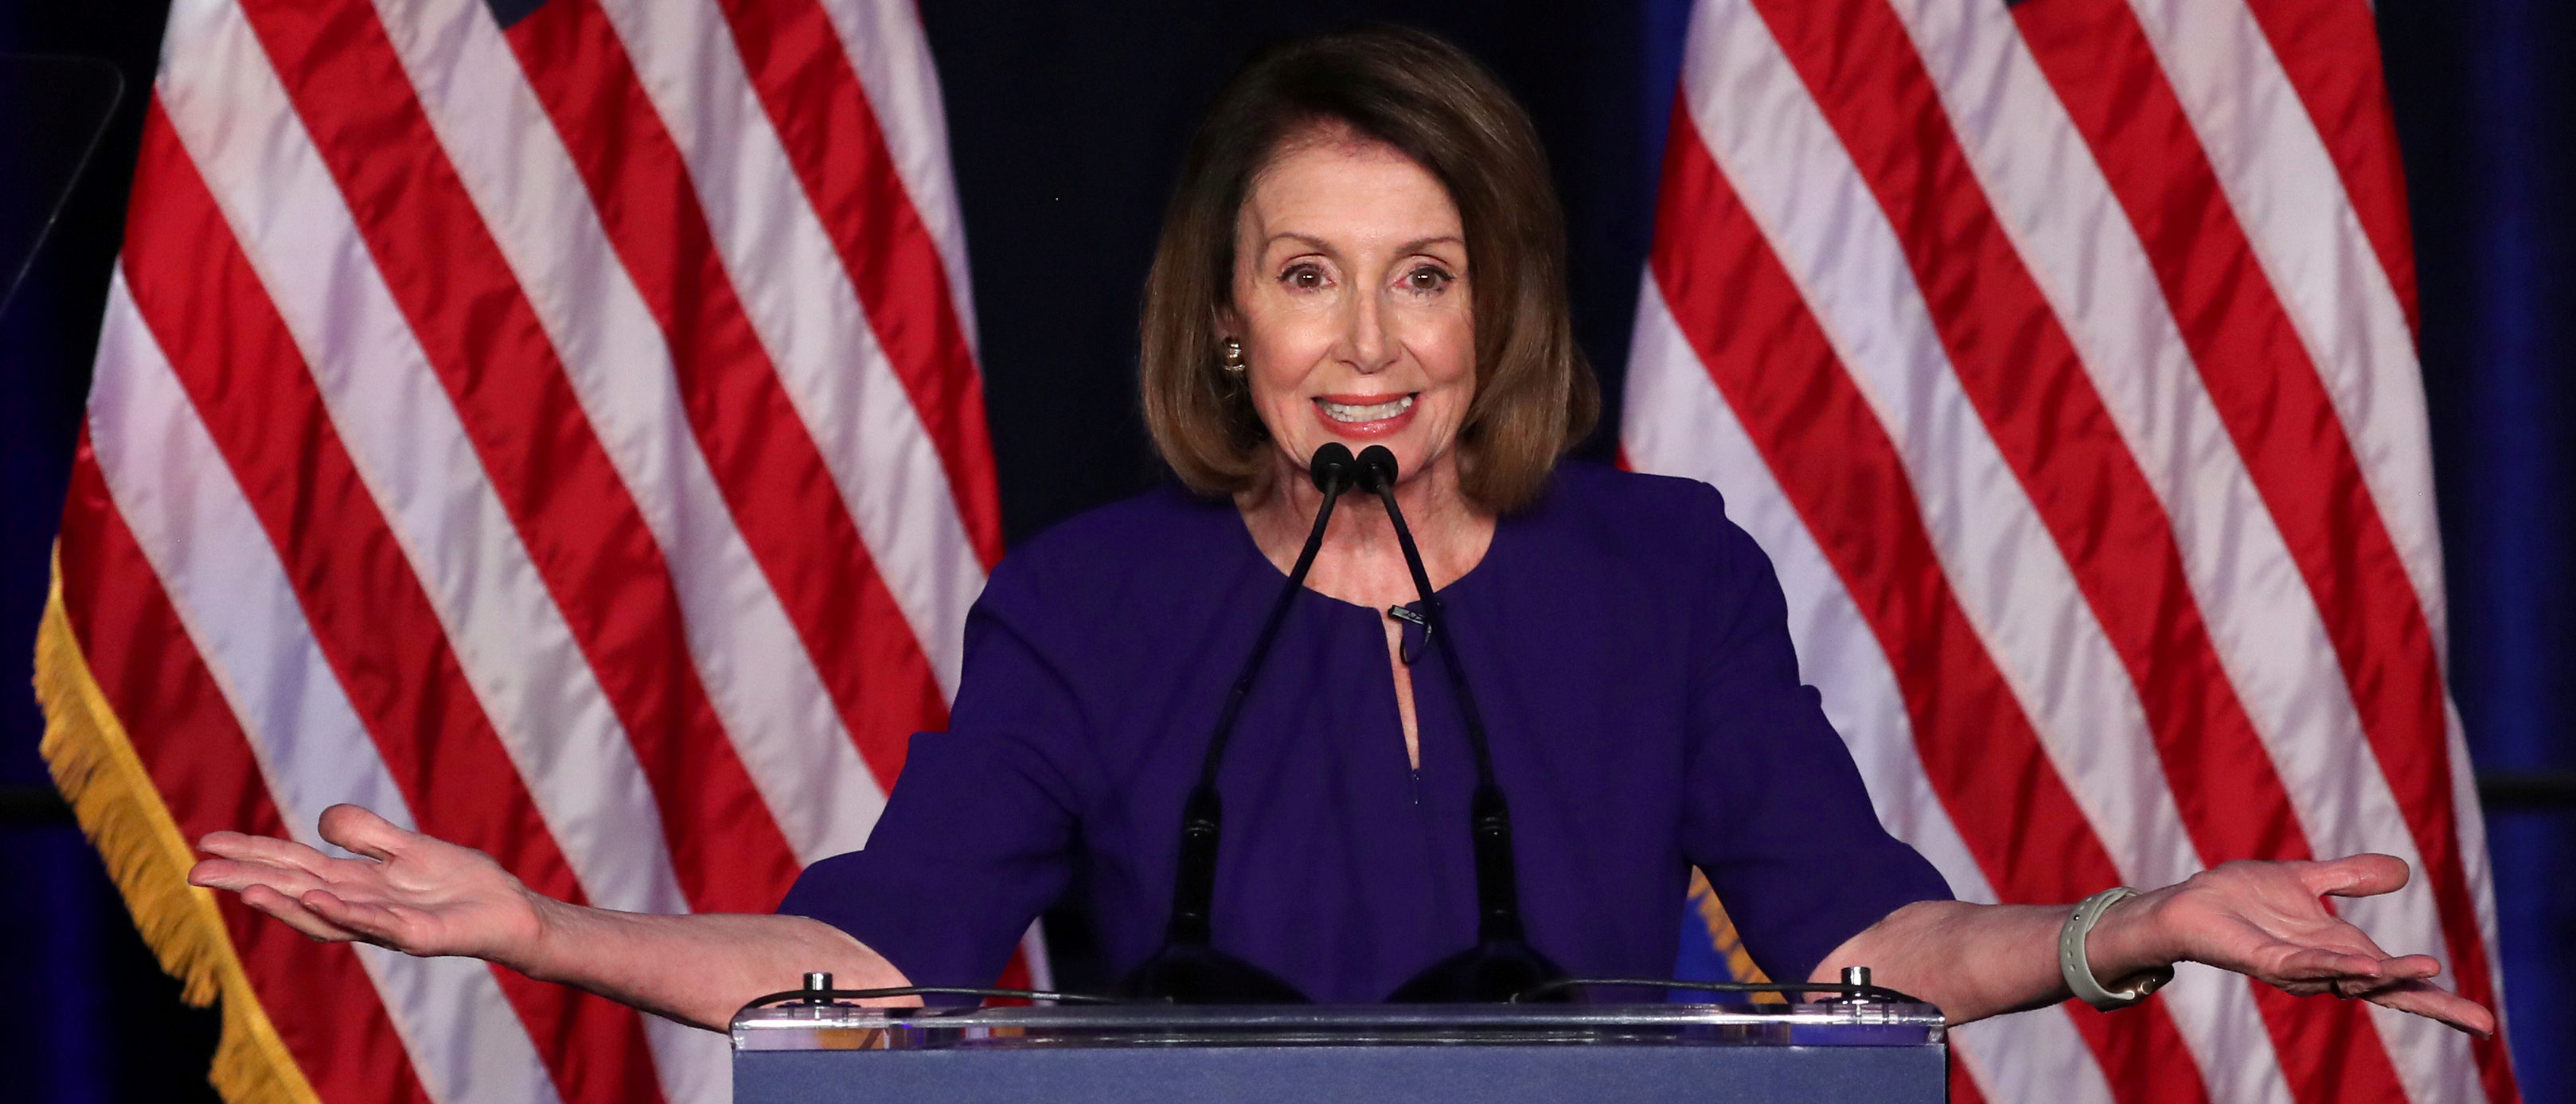 U.S. House Minority Leader Nancy Pelosi reacts to the results of the U.S. midterm elections at a Democratic election night party and rally in Washington, U.S. November 6, 2018. REUTERS/Jonathan Ernst - RC1889CBEC00